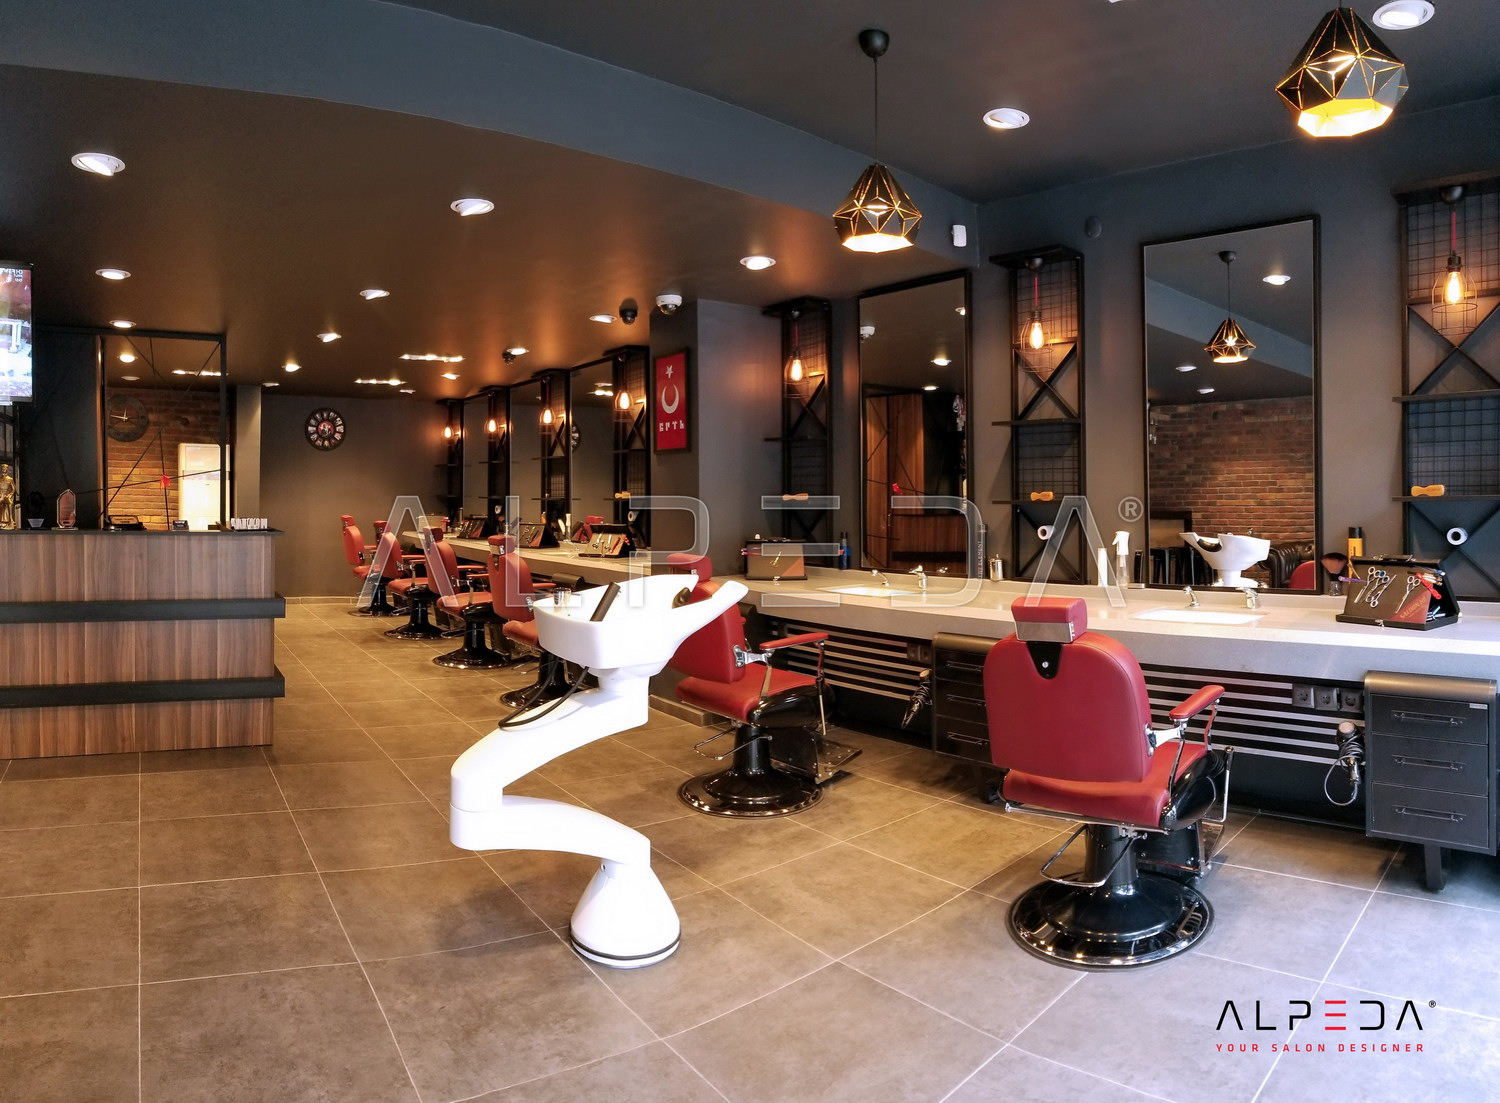 Alpeda Salon Furniture | Limousine Design | Saloon HY